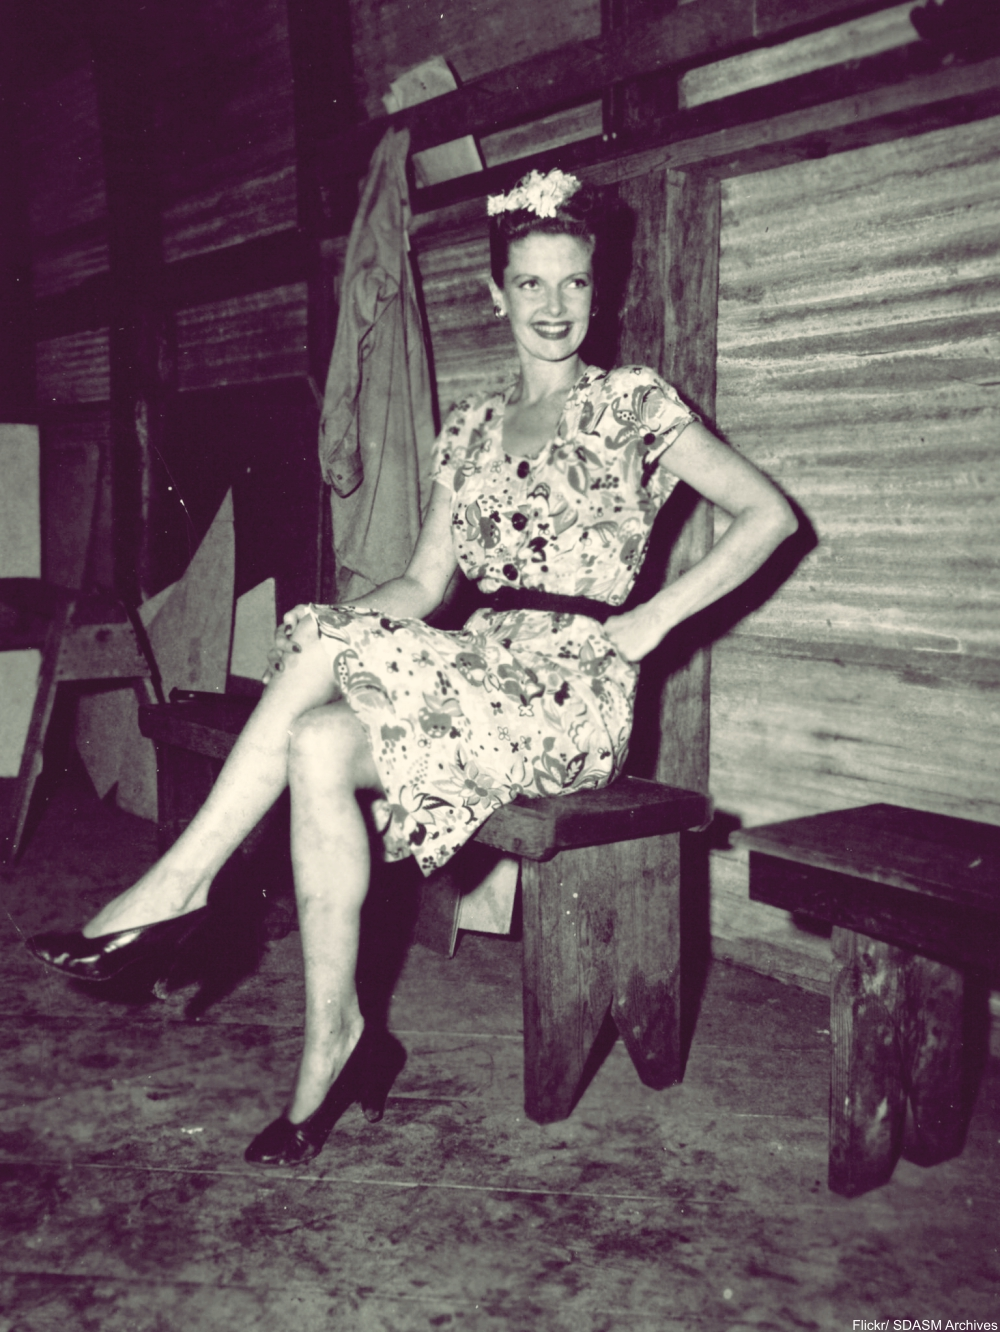 The Pin-up Girls of WWII - Not Always What We Expect!